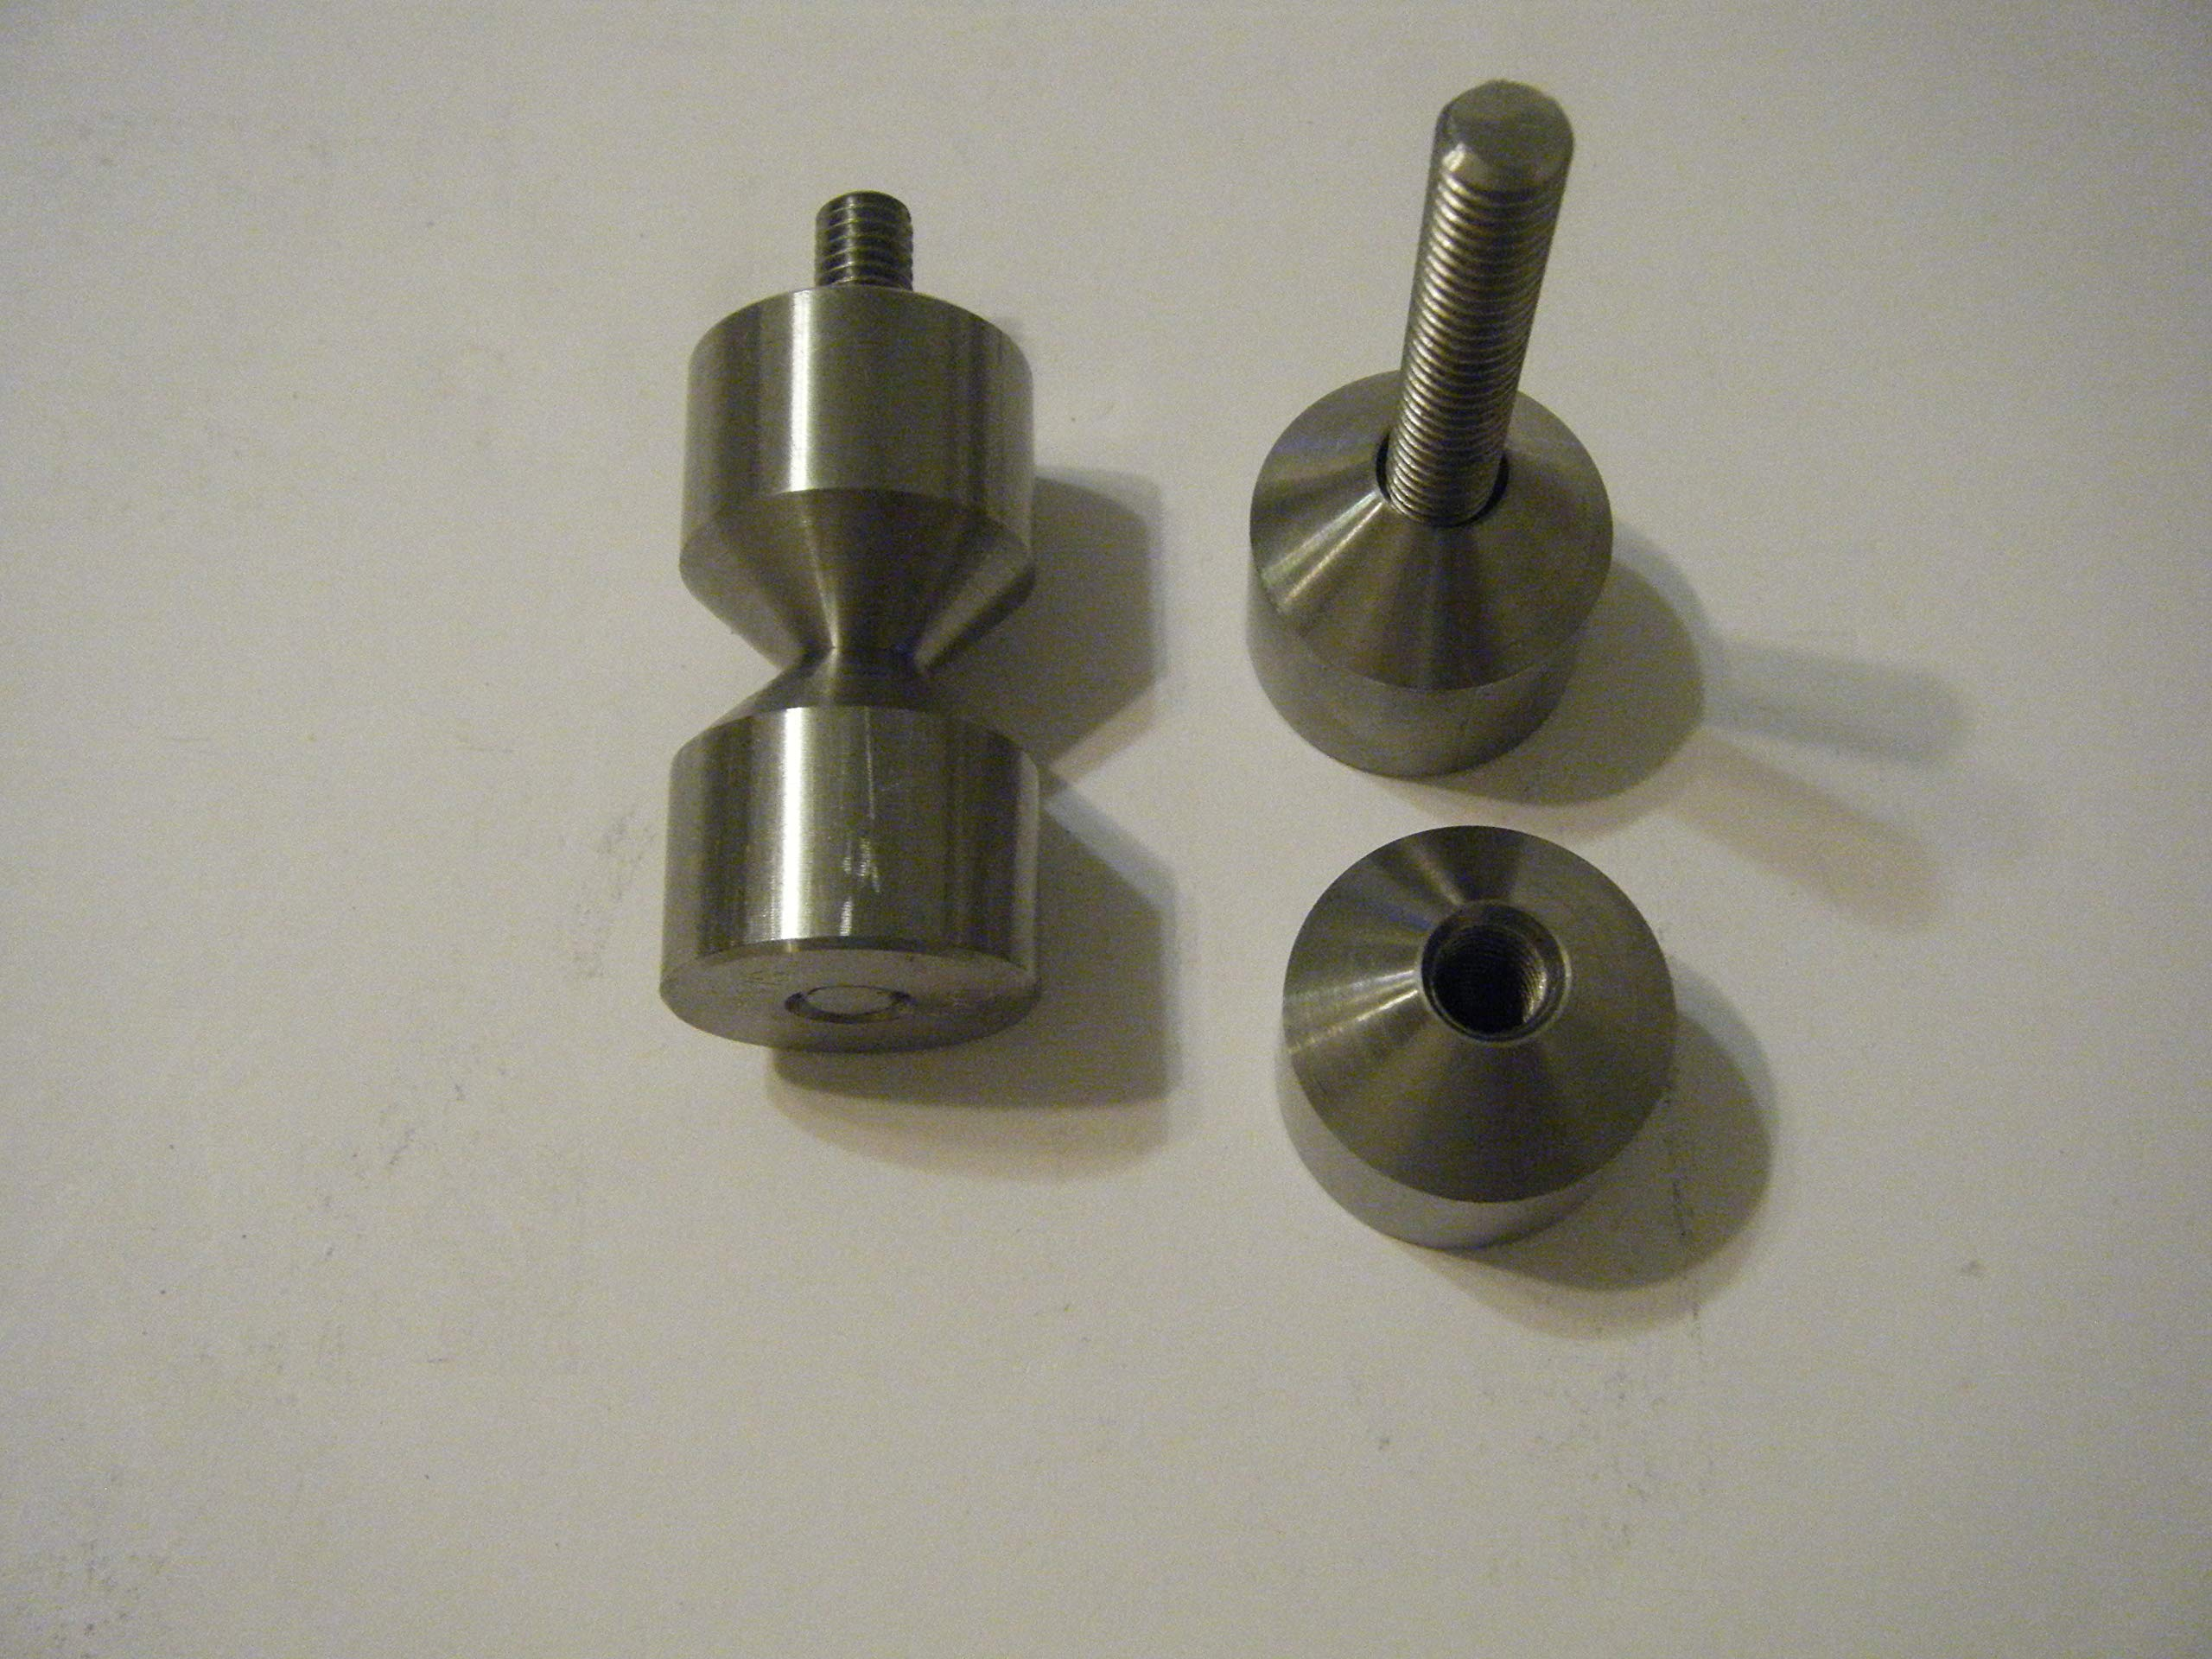 Davis 1 1/4'' Stainless Two Hole pin with 3/8''-16 Thread by Davis (Image #1)